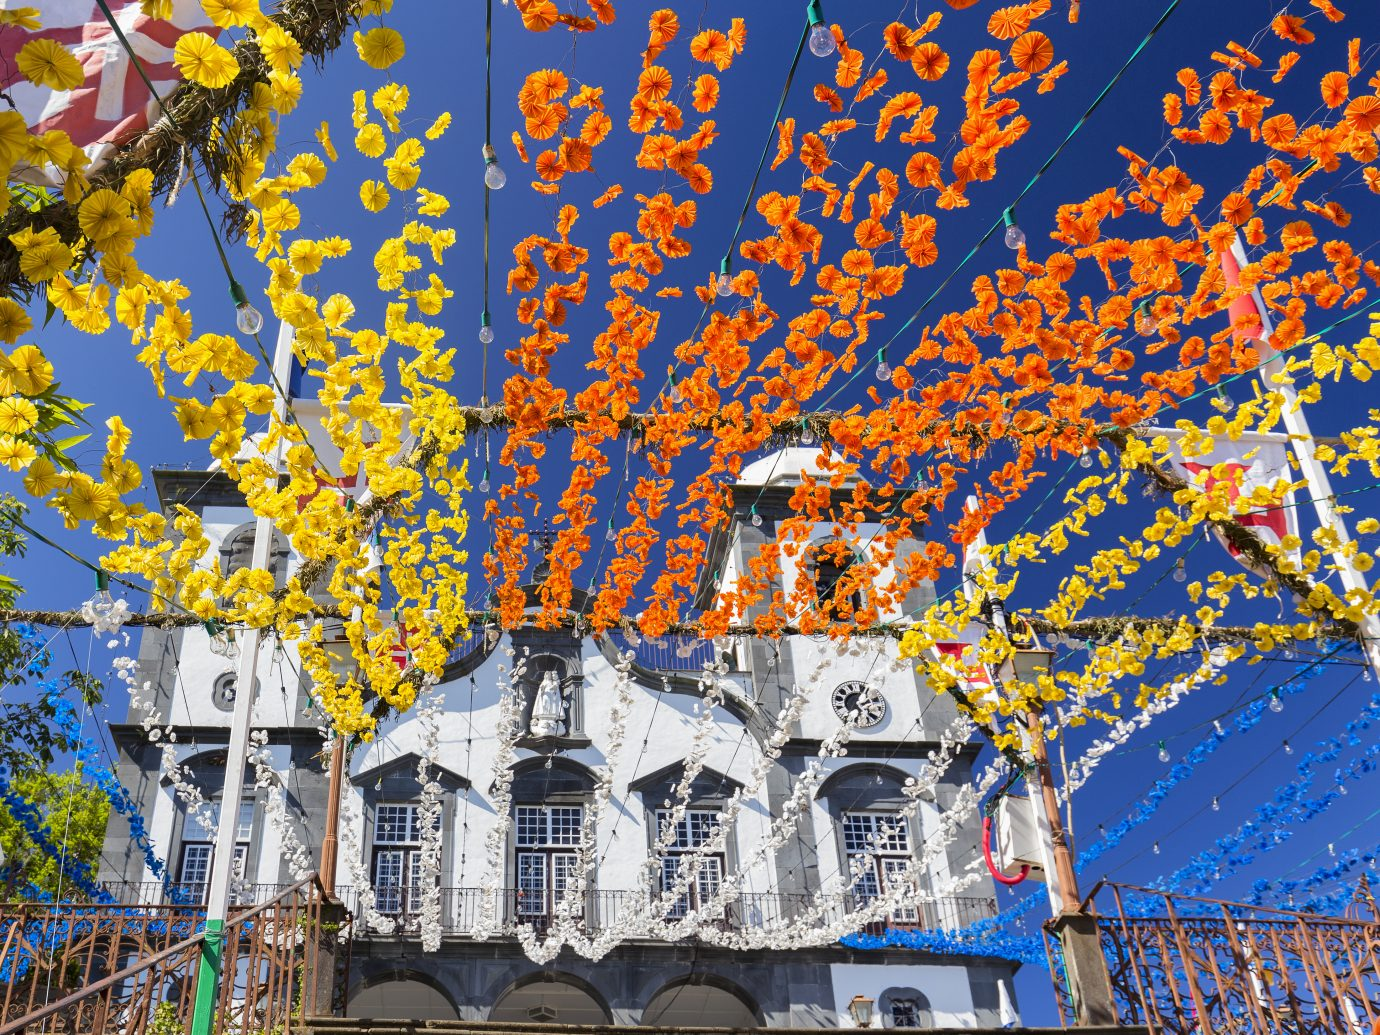 Decorate yellow, orange, blue and white flowers strung up leading to the Church of our Lady of Monte in Funchal, Portugal.